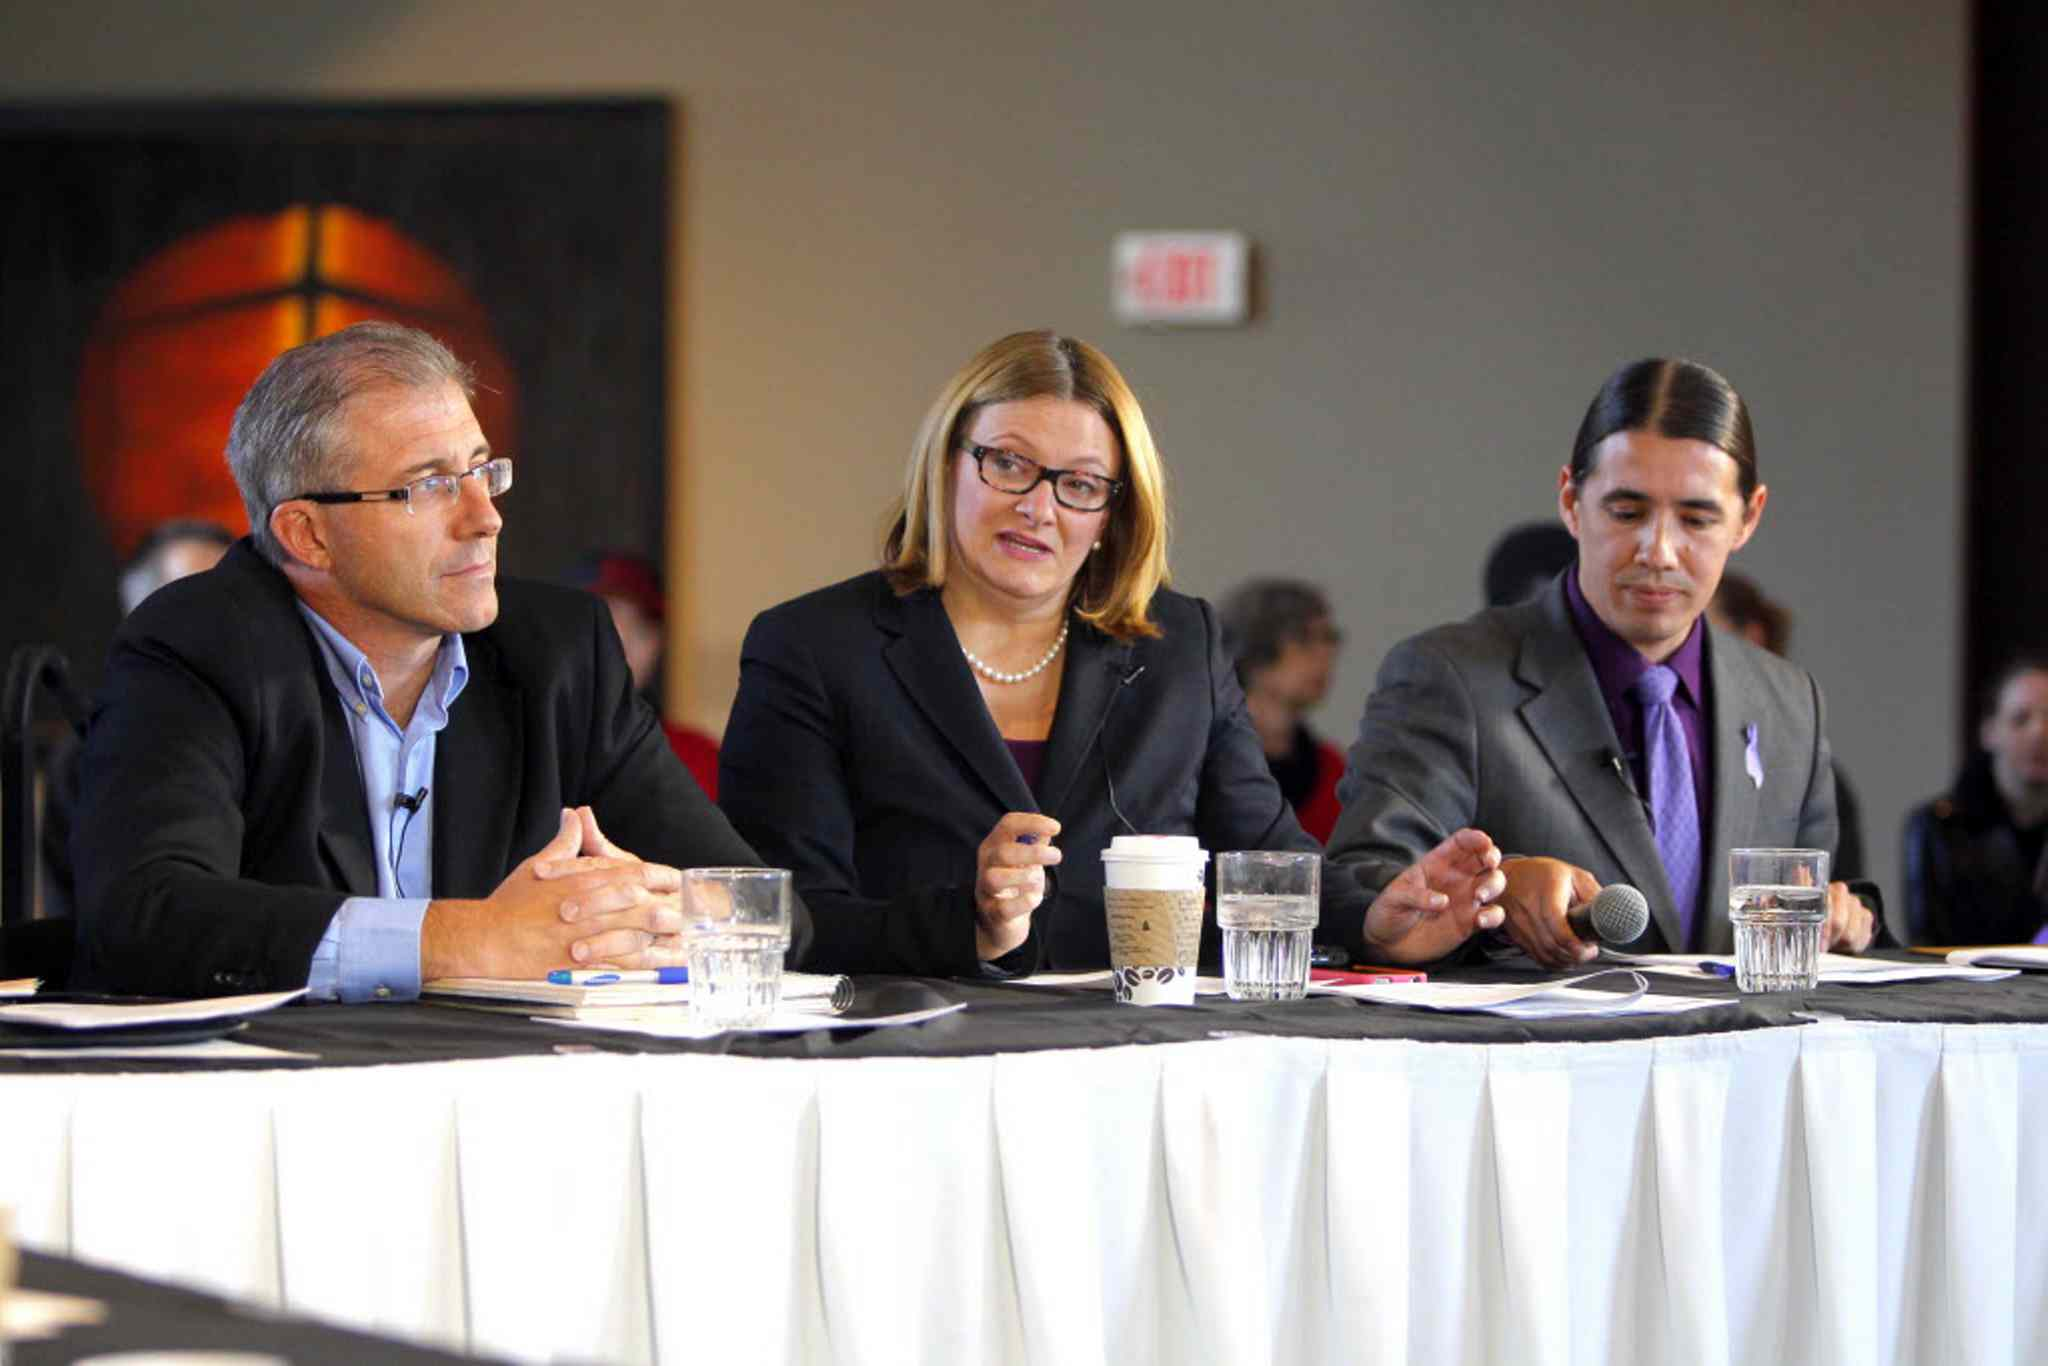 Gord Steeves, Paula Havixbeck and Robert-Falcon Ouellette mayoral debates at the Hydro building downtown.